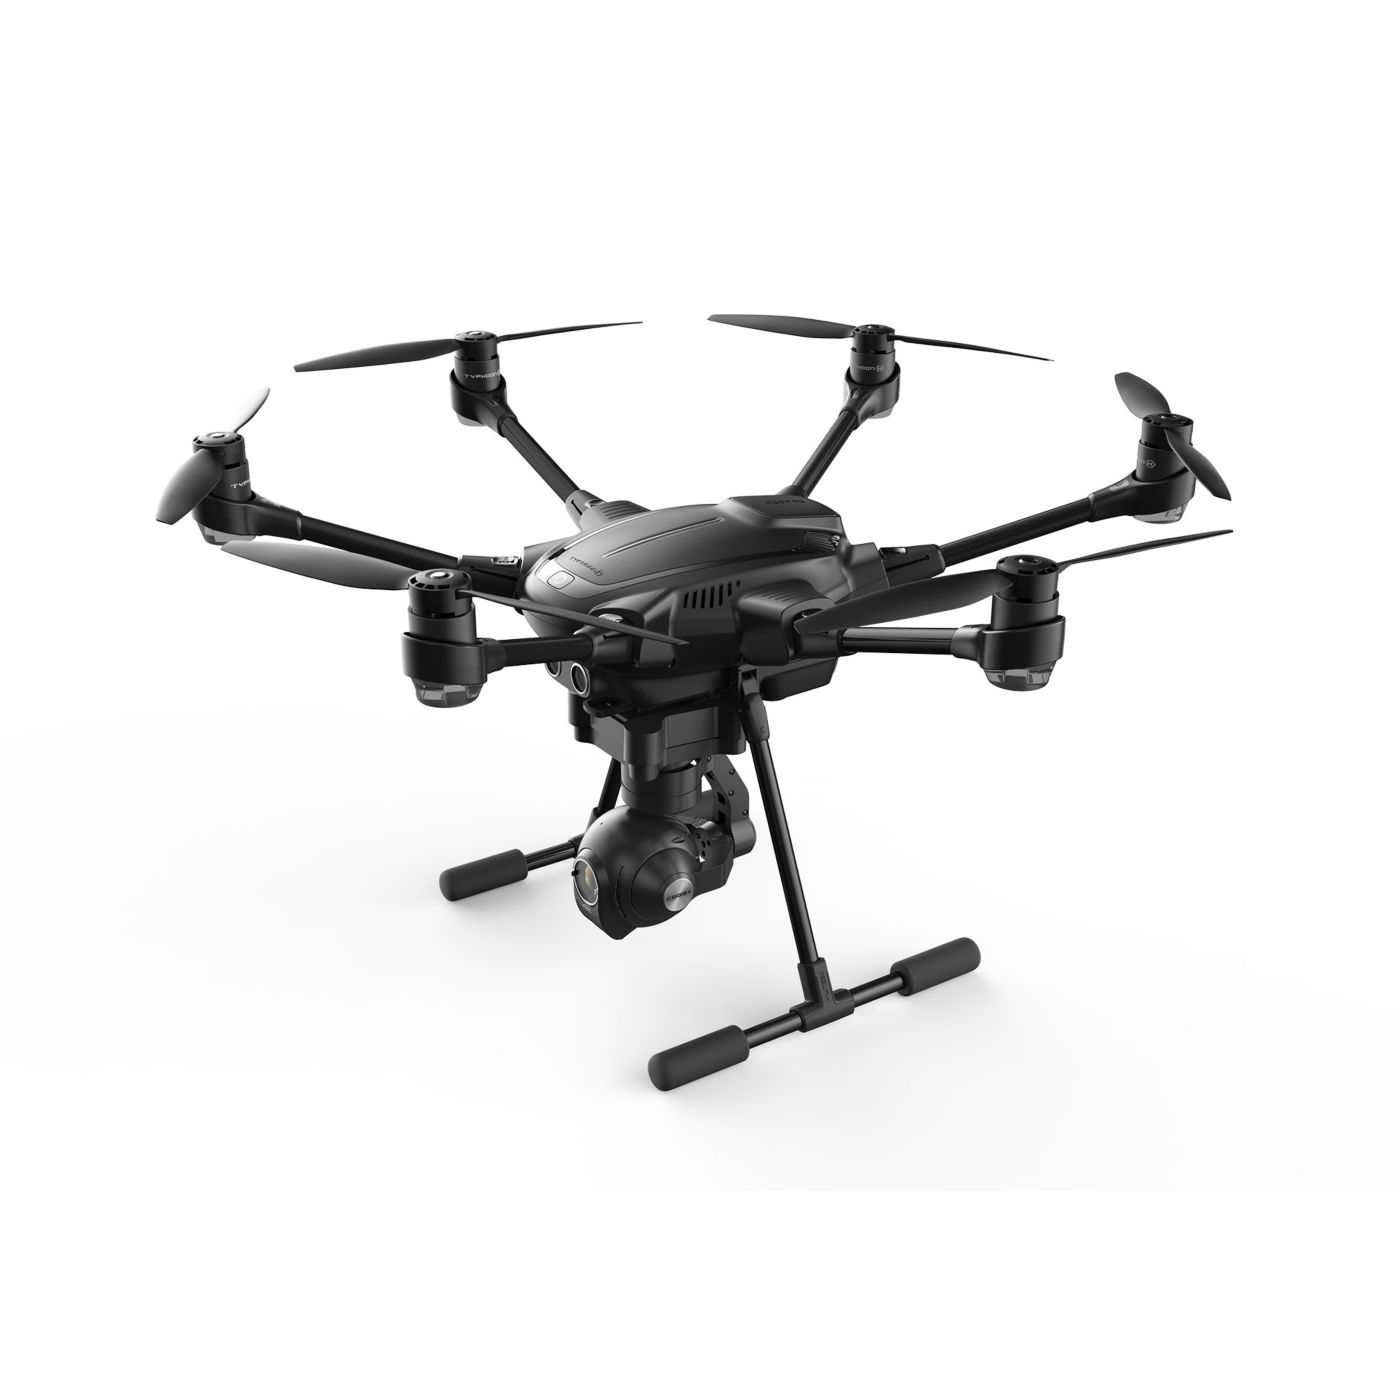 Yuneec Typhoon H RTF Hexacopter - SNHE